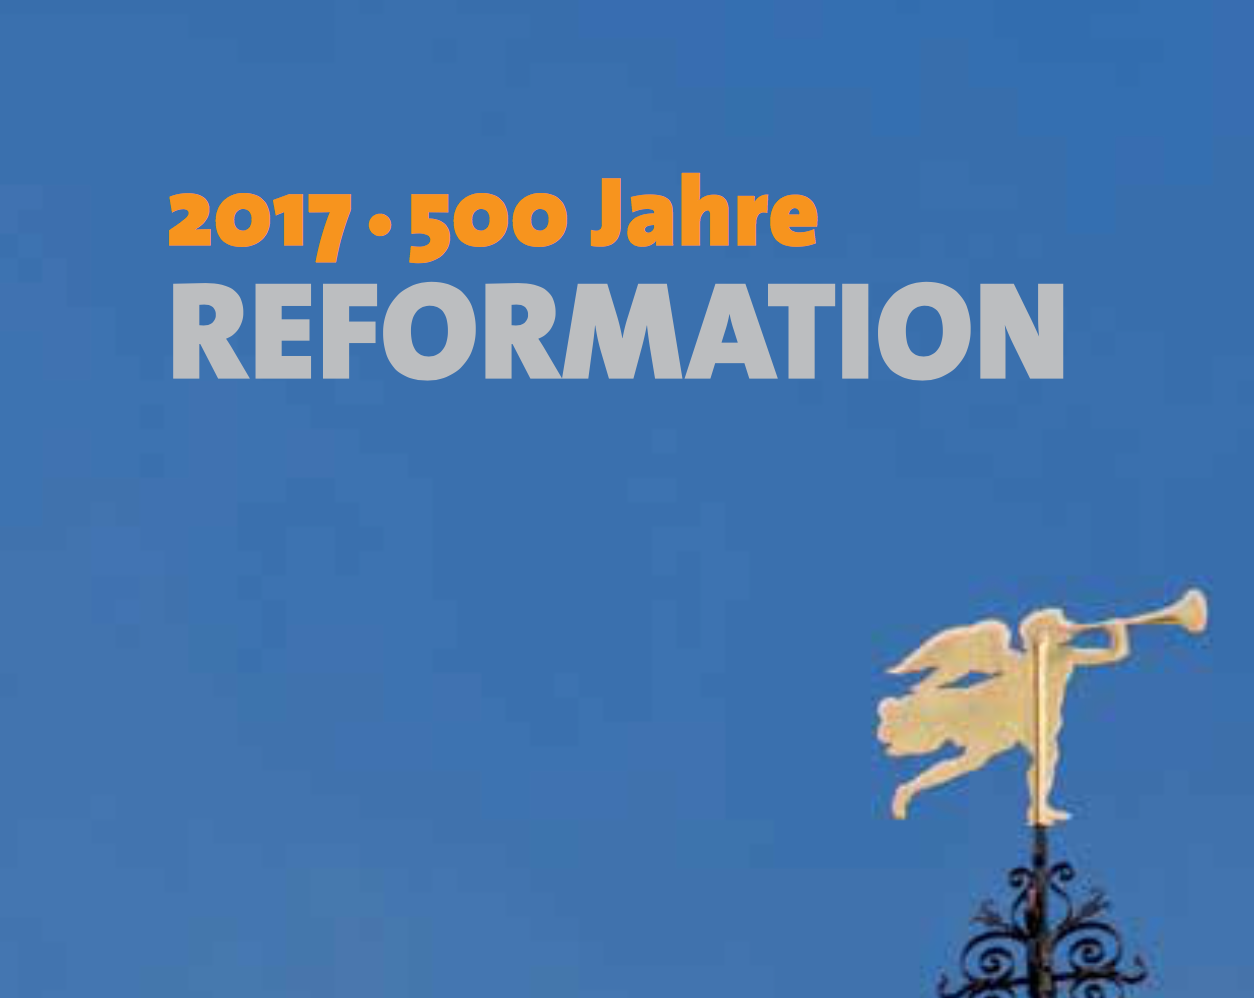 Reformationsfest